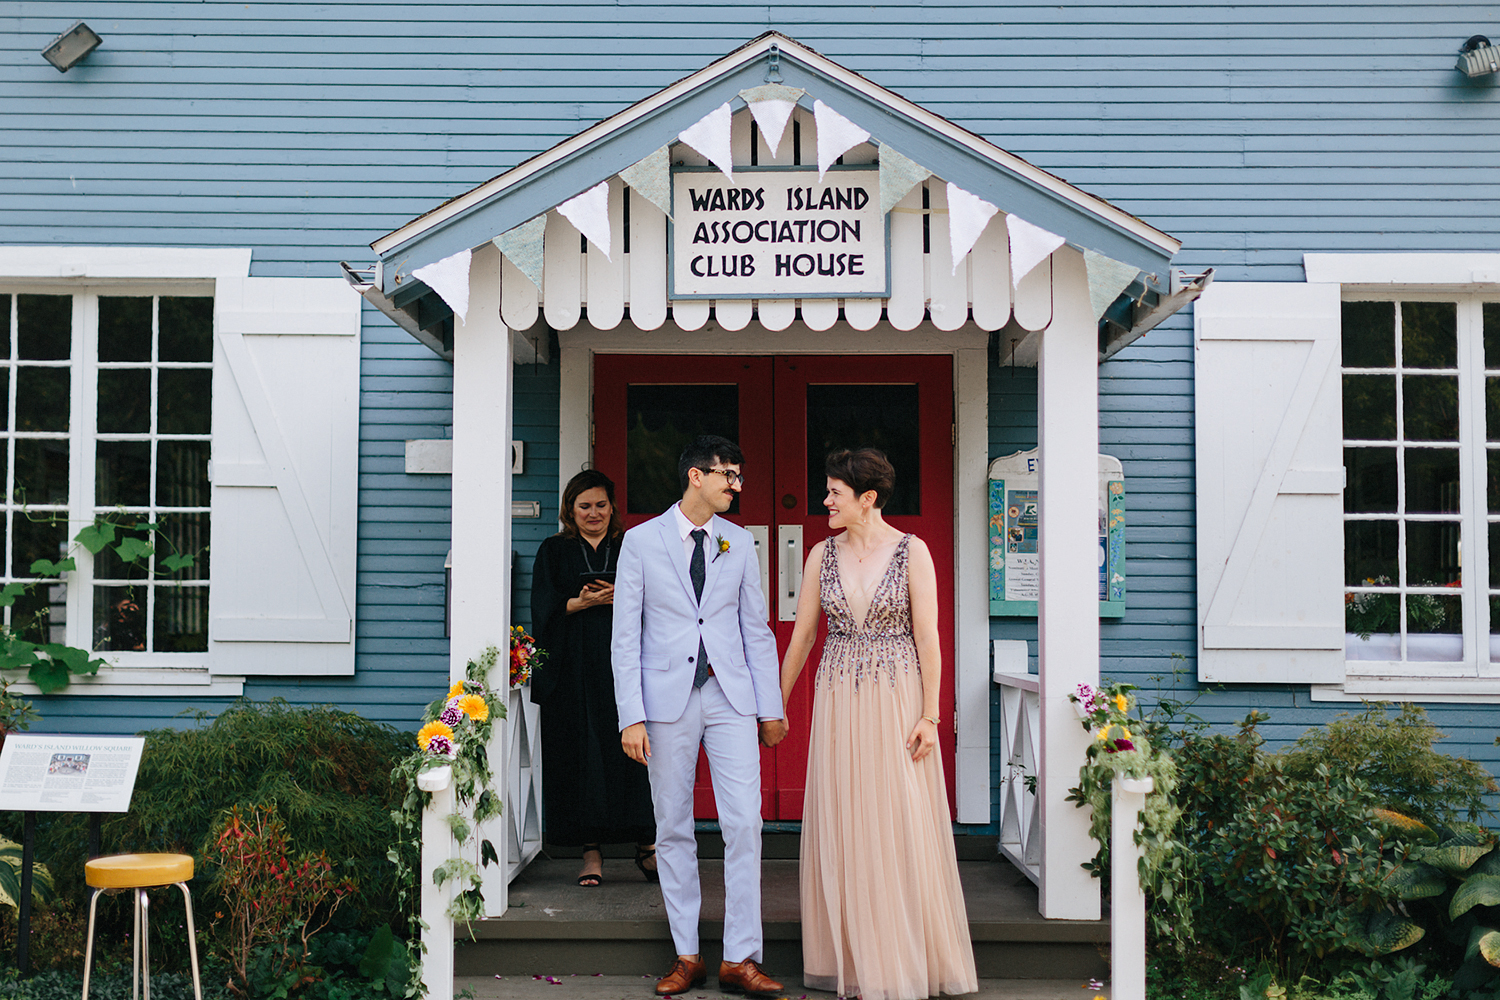 Best-Photographers-in-Toronto-Analog-Film-Toronto-Island-Wedding-Wards-Island-Clubhouse-Venue-small-intimate-hipster-alternative-vintage-inspired-wedding-ceremony-personalized-bride-and-groom-just-married.jpg